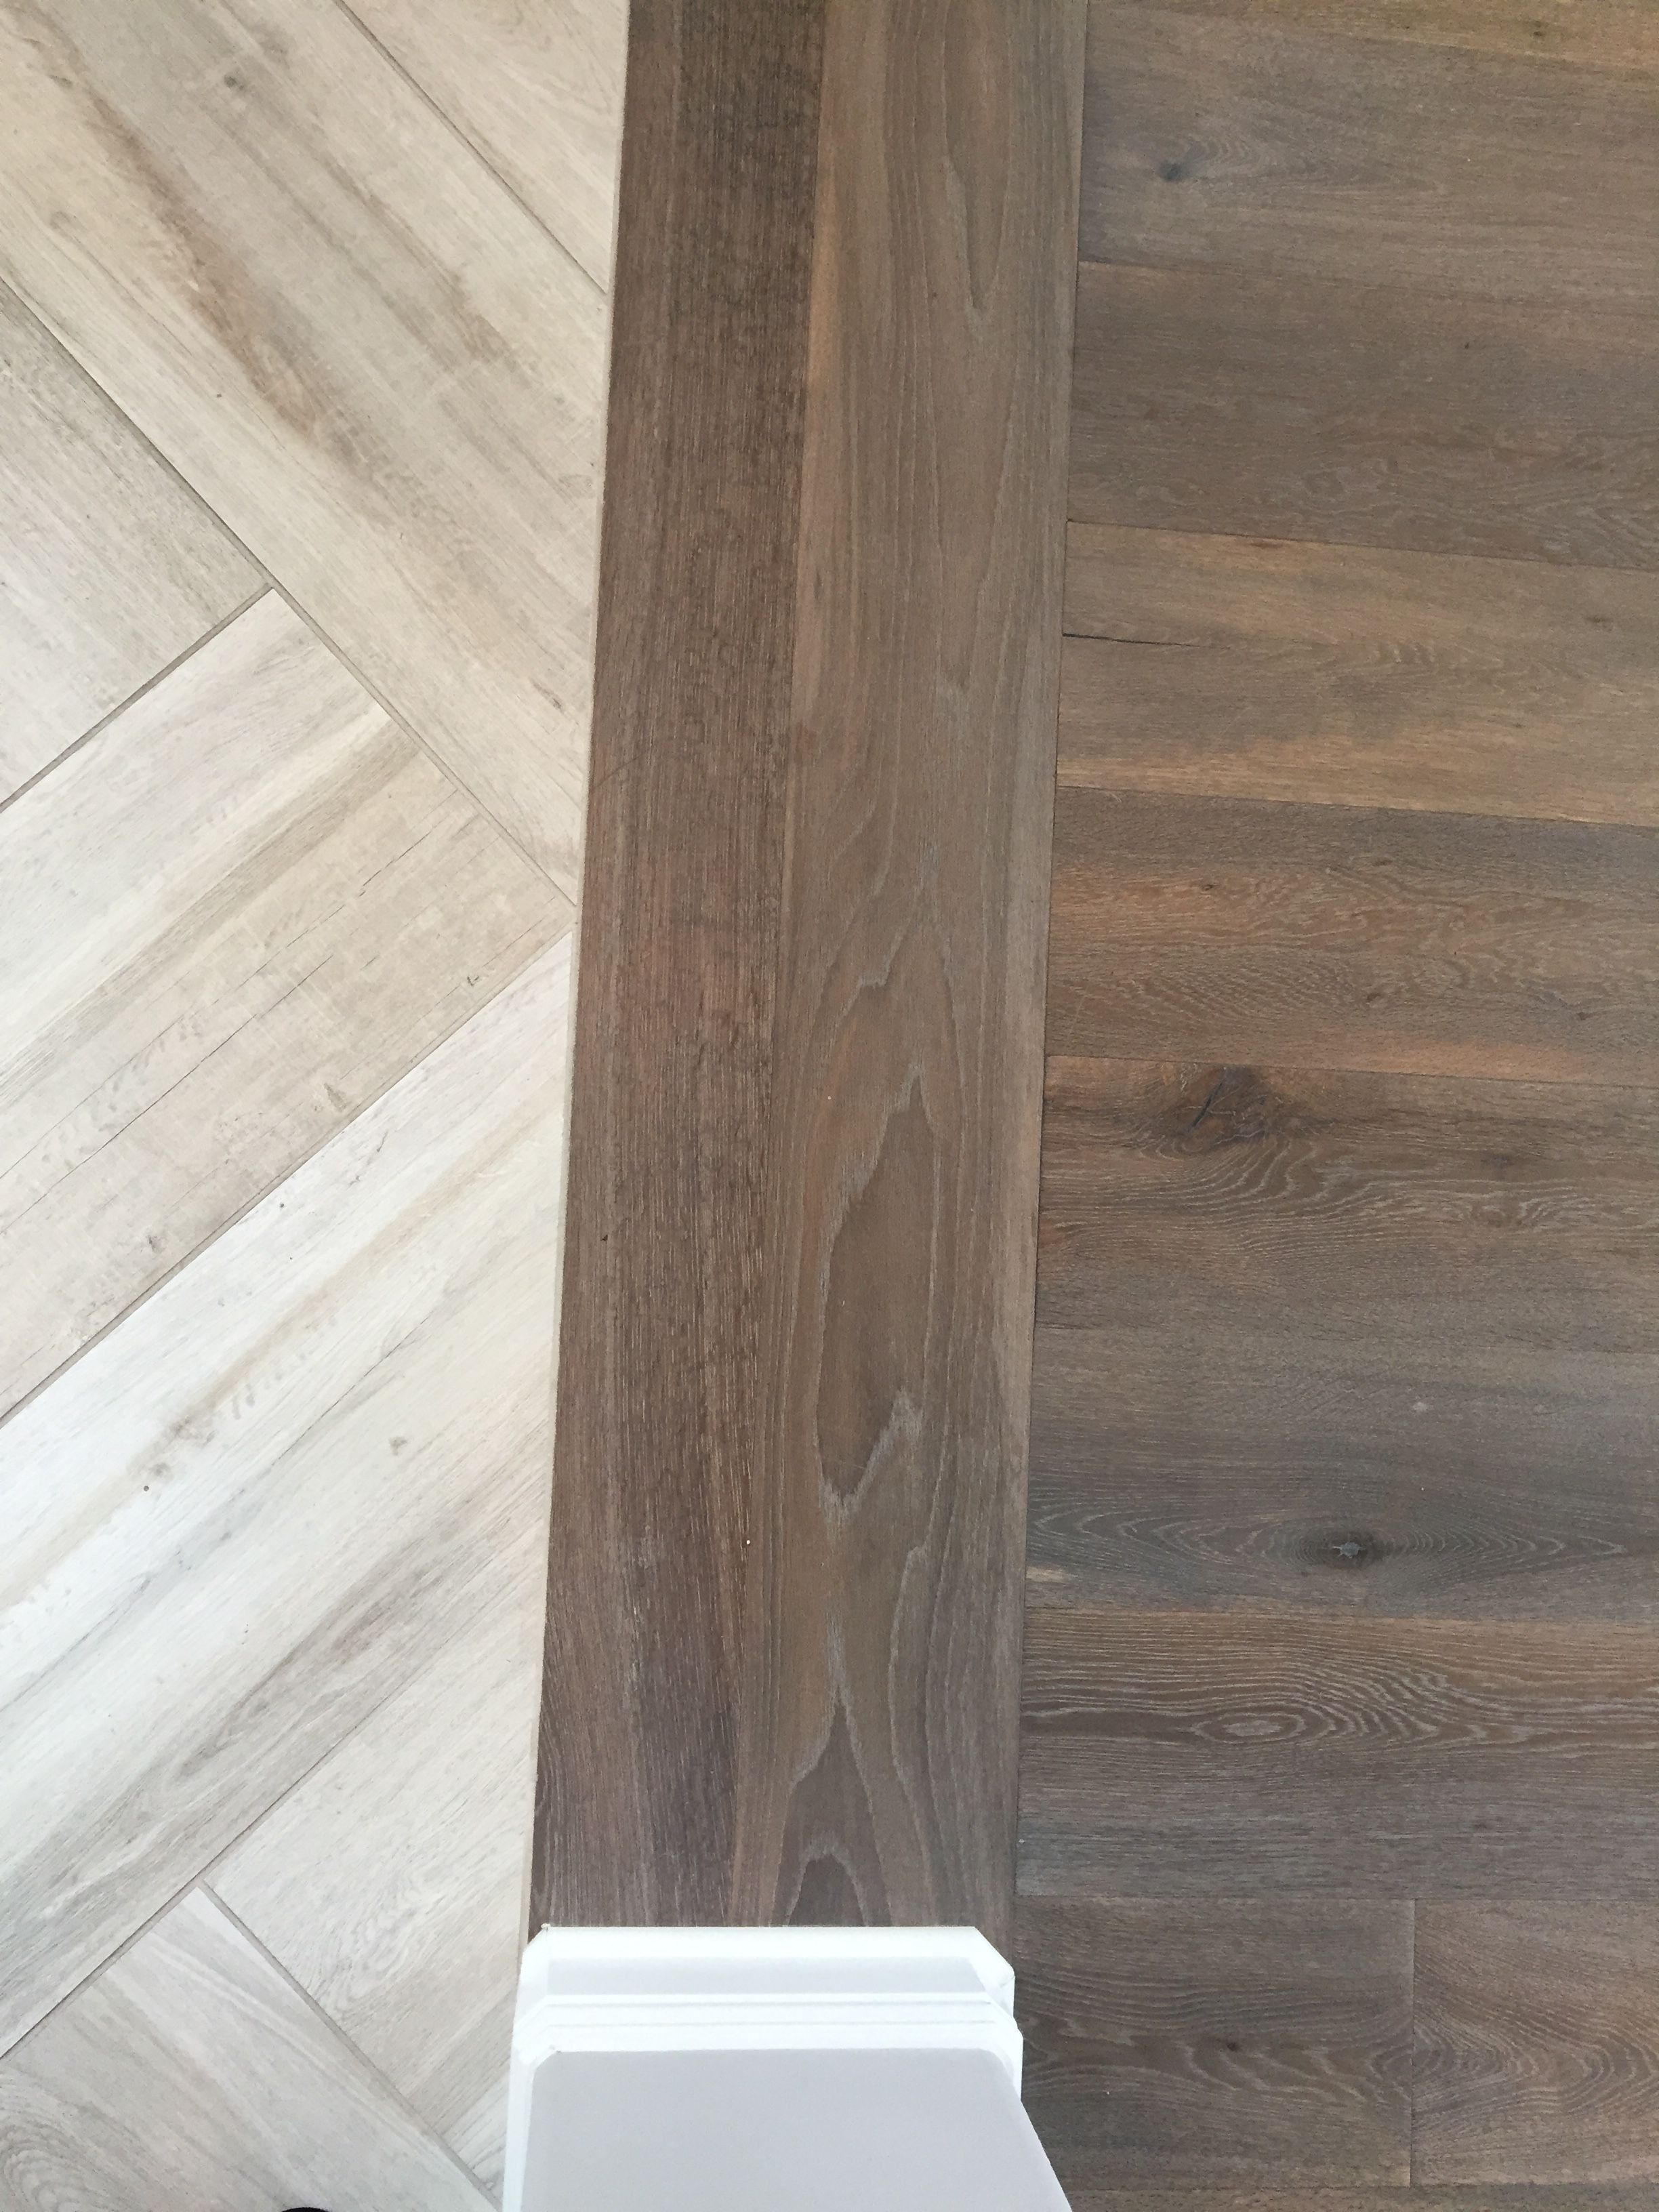 dark hardwood floor texture of floor transition laminate to herringbone tile pattern model for floor transition laminate to herringbone tile pattern herringbone tile pattern herringbone wood floor